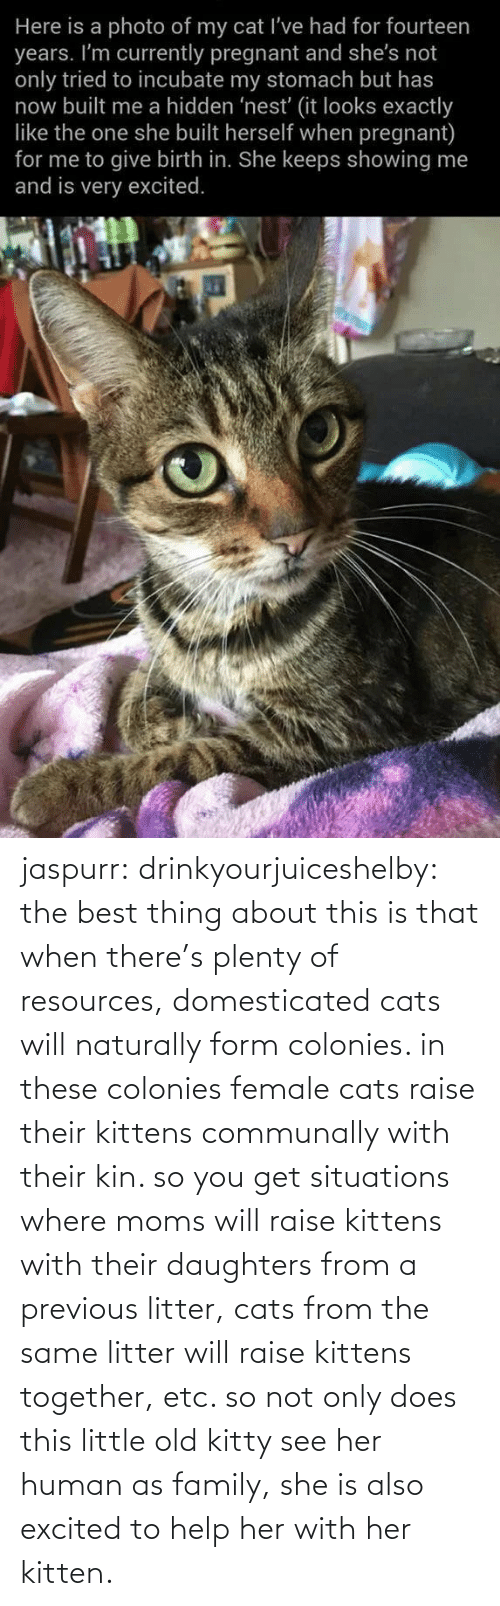 her: jaspurr:  drinkyourjuiceshelby:    the best thing about this is that when there's plenty of resources, domesticated cats will naturally form colonies. in these colonies female cats raise their kittens communally with their kin. so you get situations where moms will raise kittens with their daughters from a previous litter, cats from the same litter will raise kittens together, etc. so not only does this little old kitty see her human as family, she is also excited to help her with her kitten.